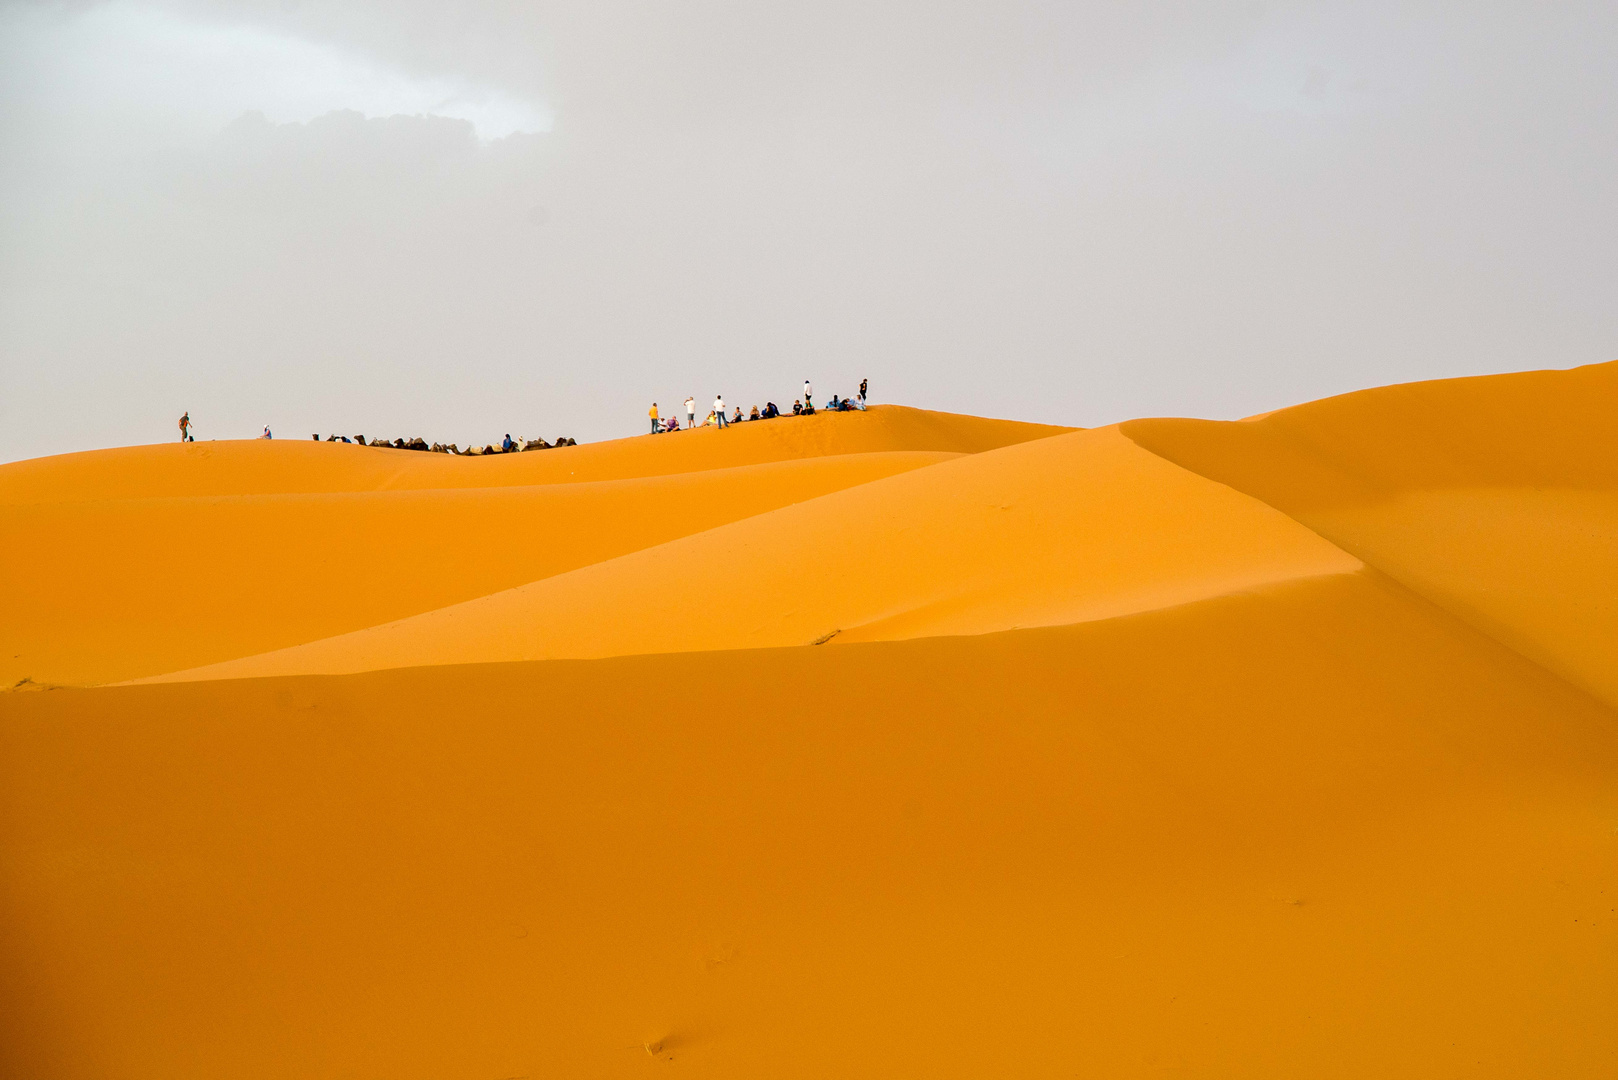 Sand dunes of the Sahara with camels and tourists